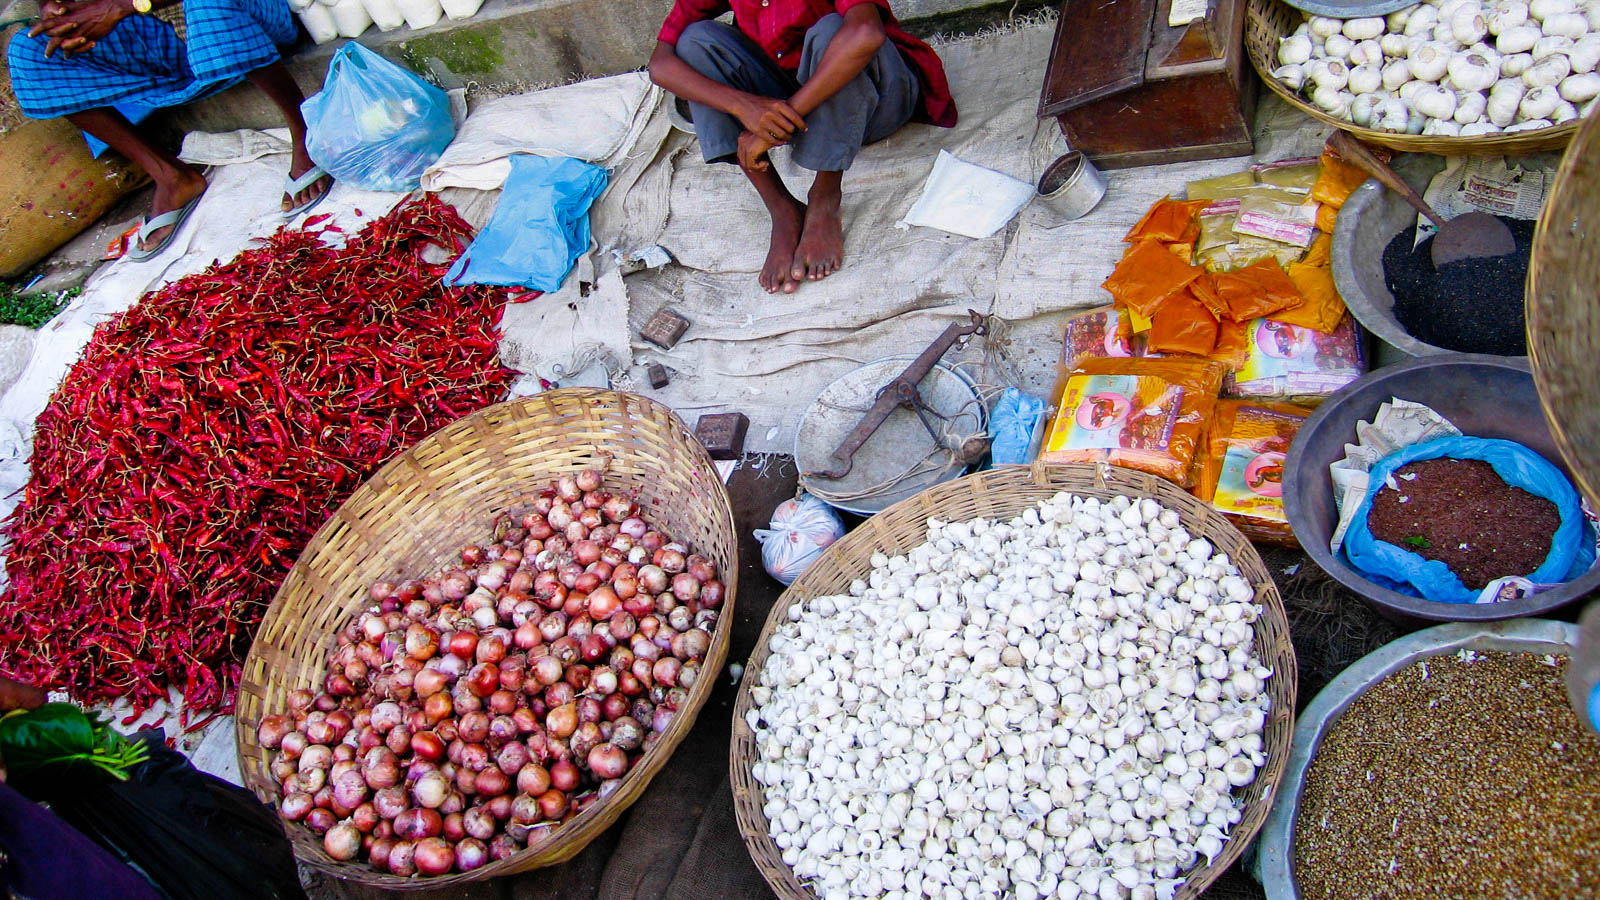 open-air farmer's market in Bangladesh